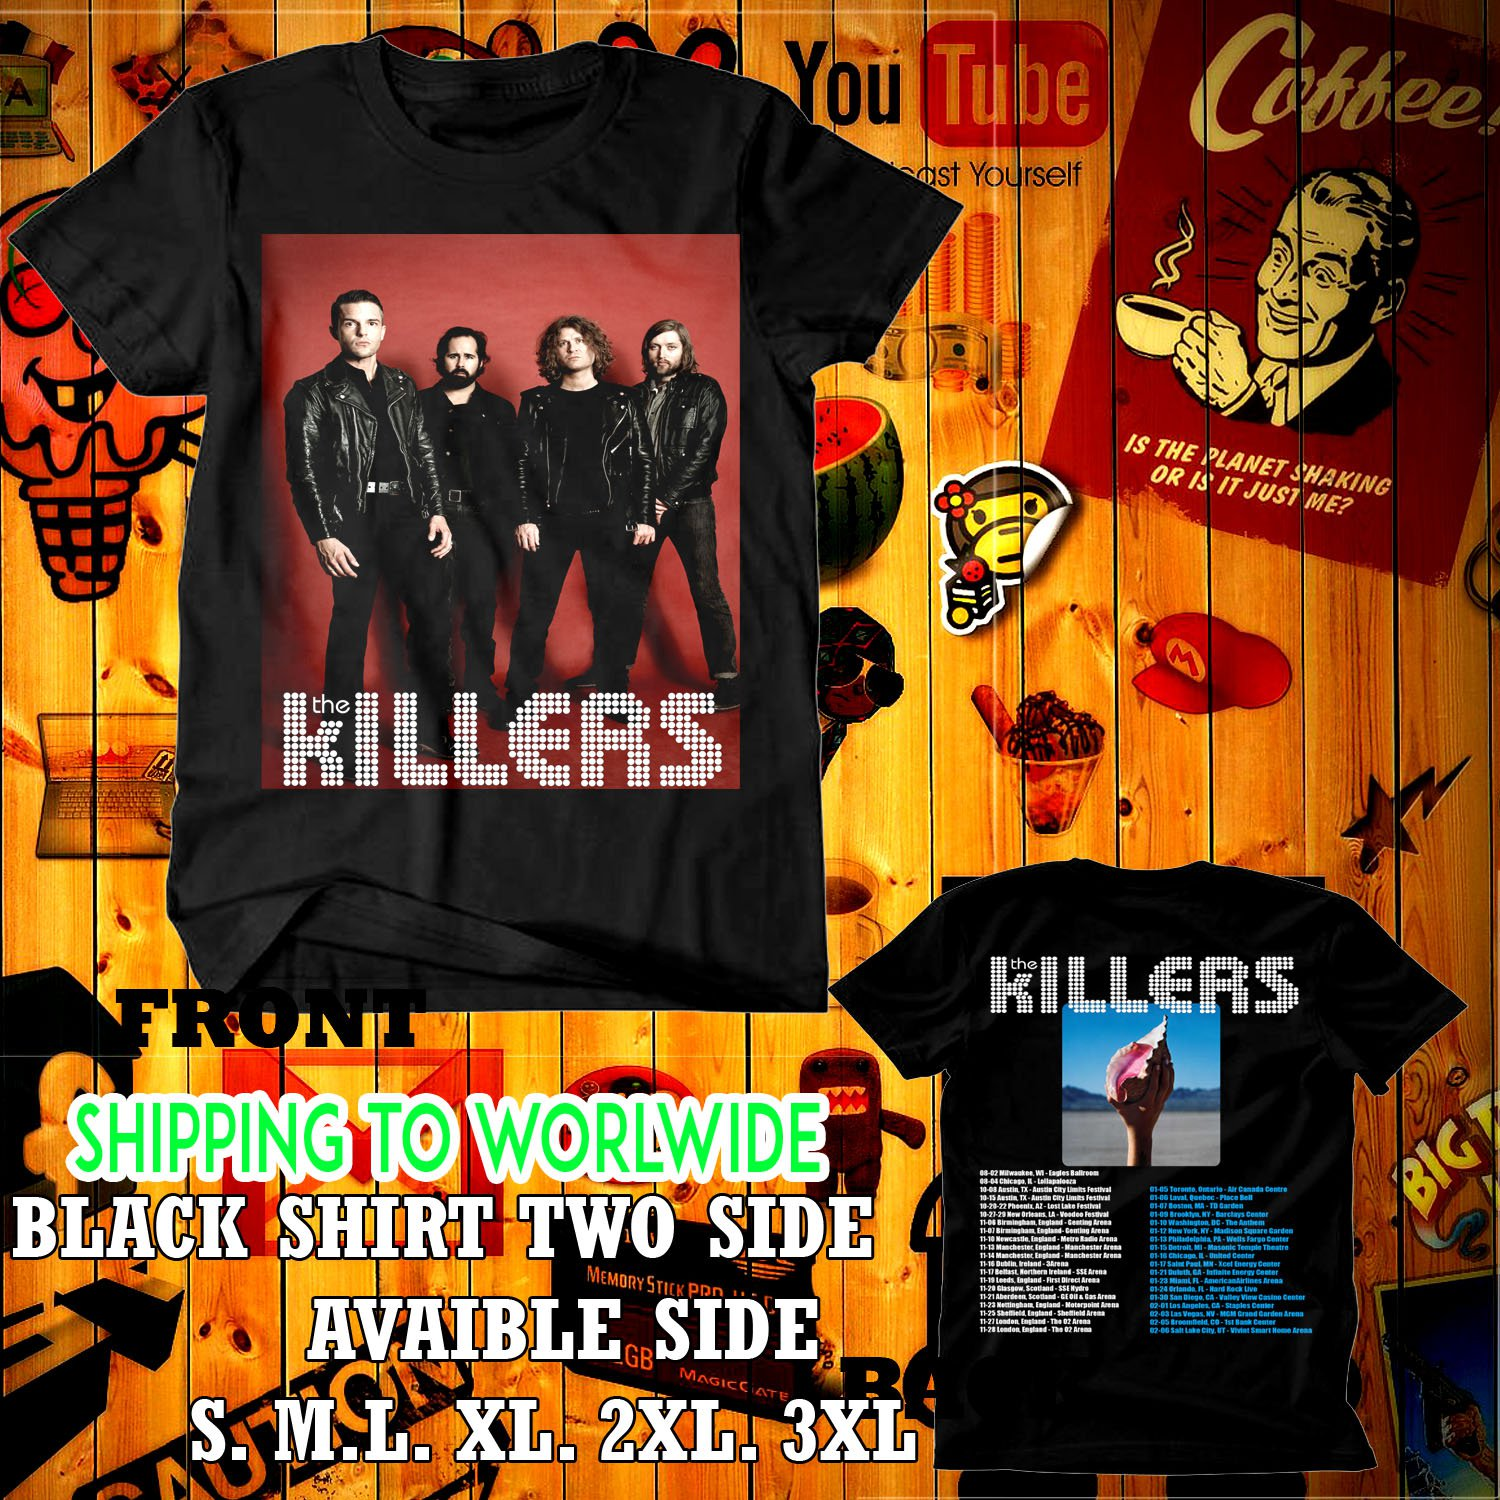 the killers tour dates 2017-18 black two side code 05e